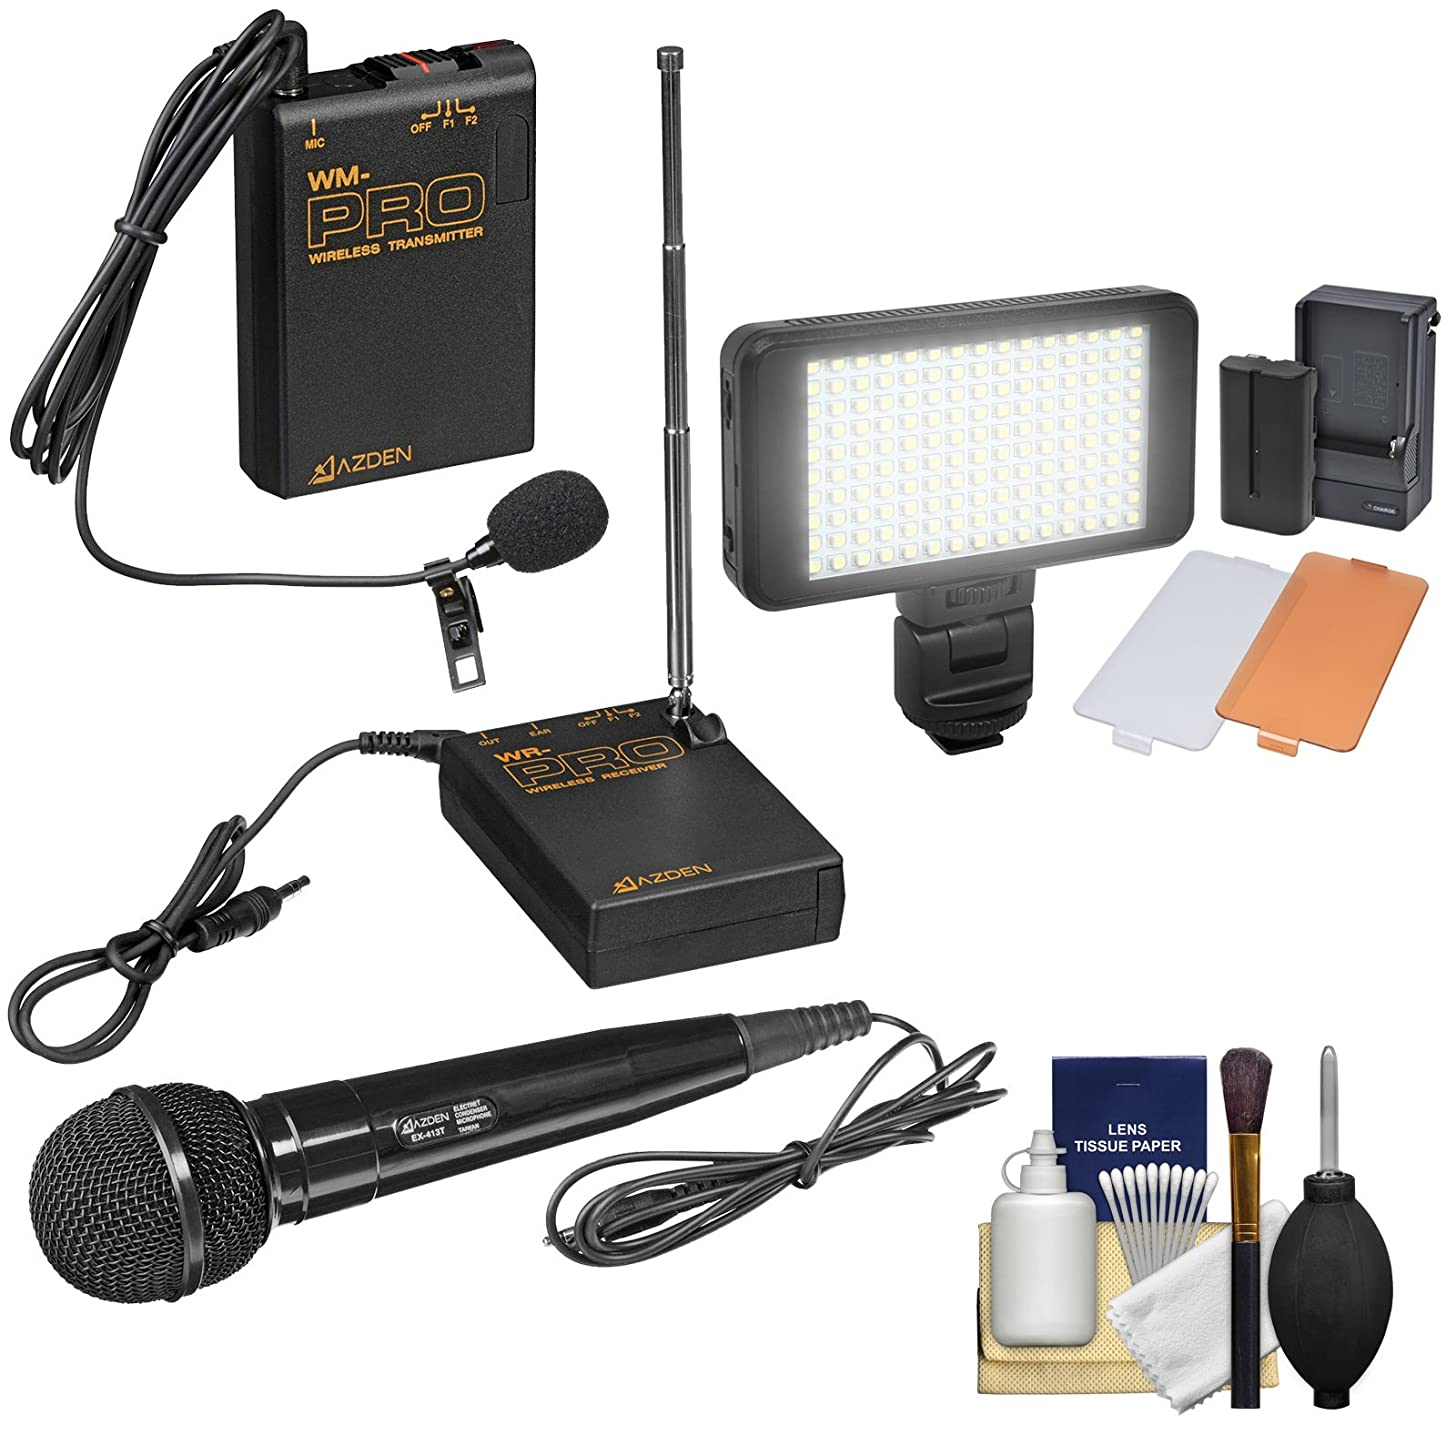 Azden WMS-PRO Wireless Microphone System (Handheld & Lavalier) with LED Video Light + Cleaning Kit